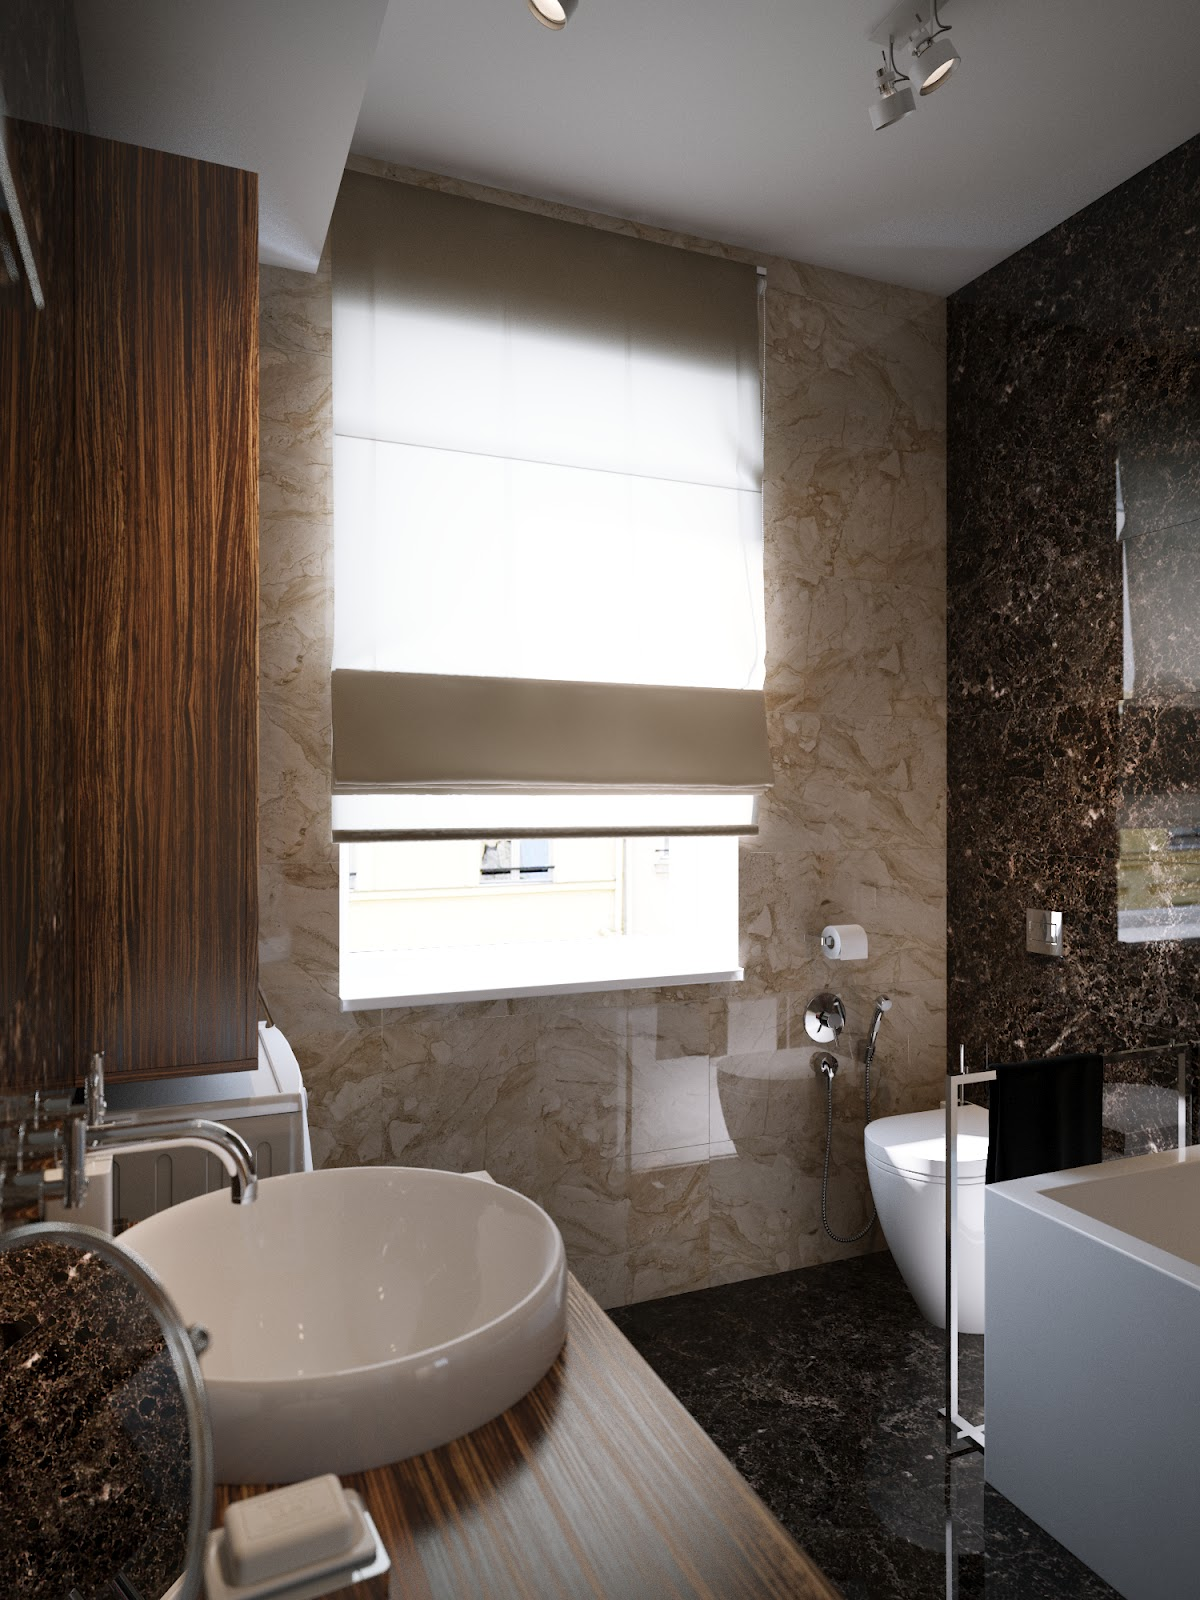 Modern bathroom design scheme interior design ideas for Bathroom designs contemporary